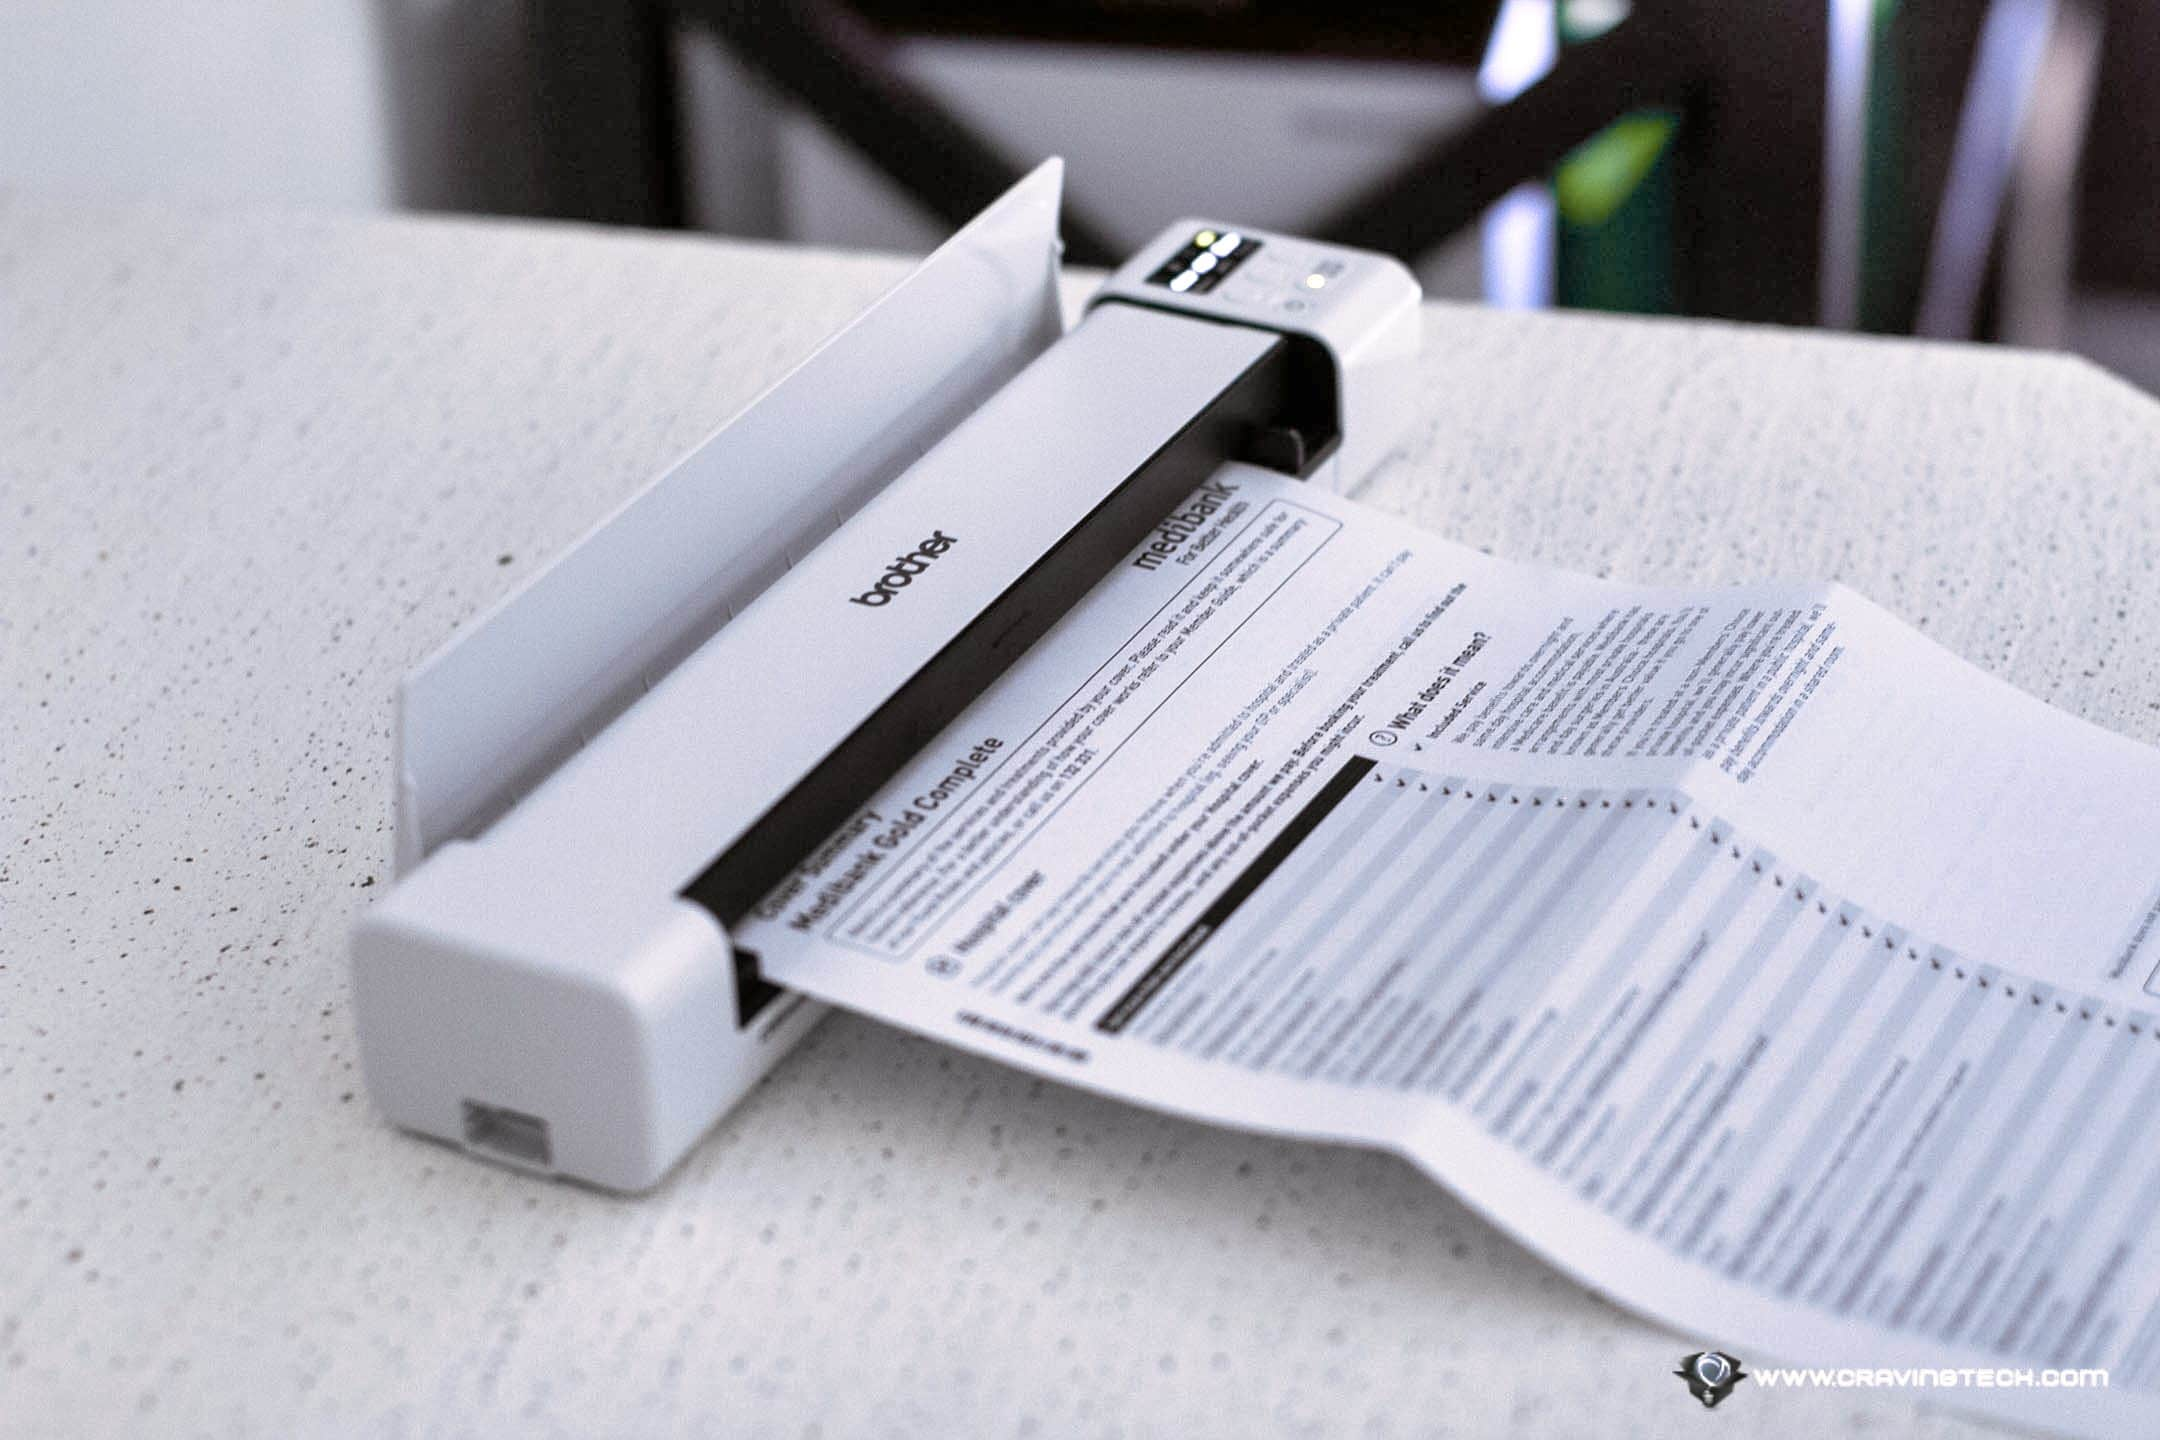 This portable scanner comes with auto Duplex scanning! Brother Portable Document Scanner DS-940DW Review